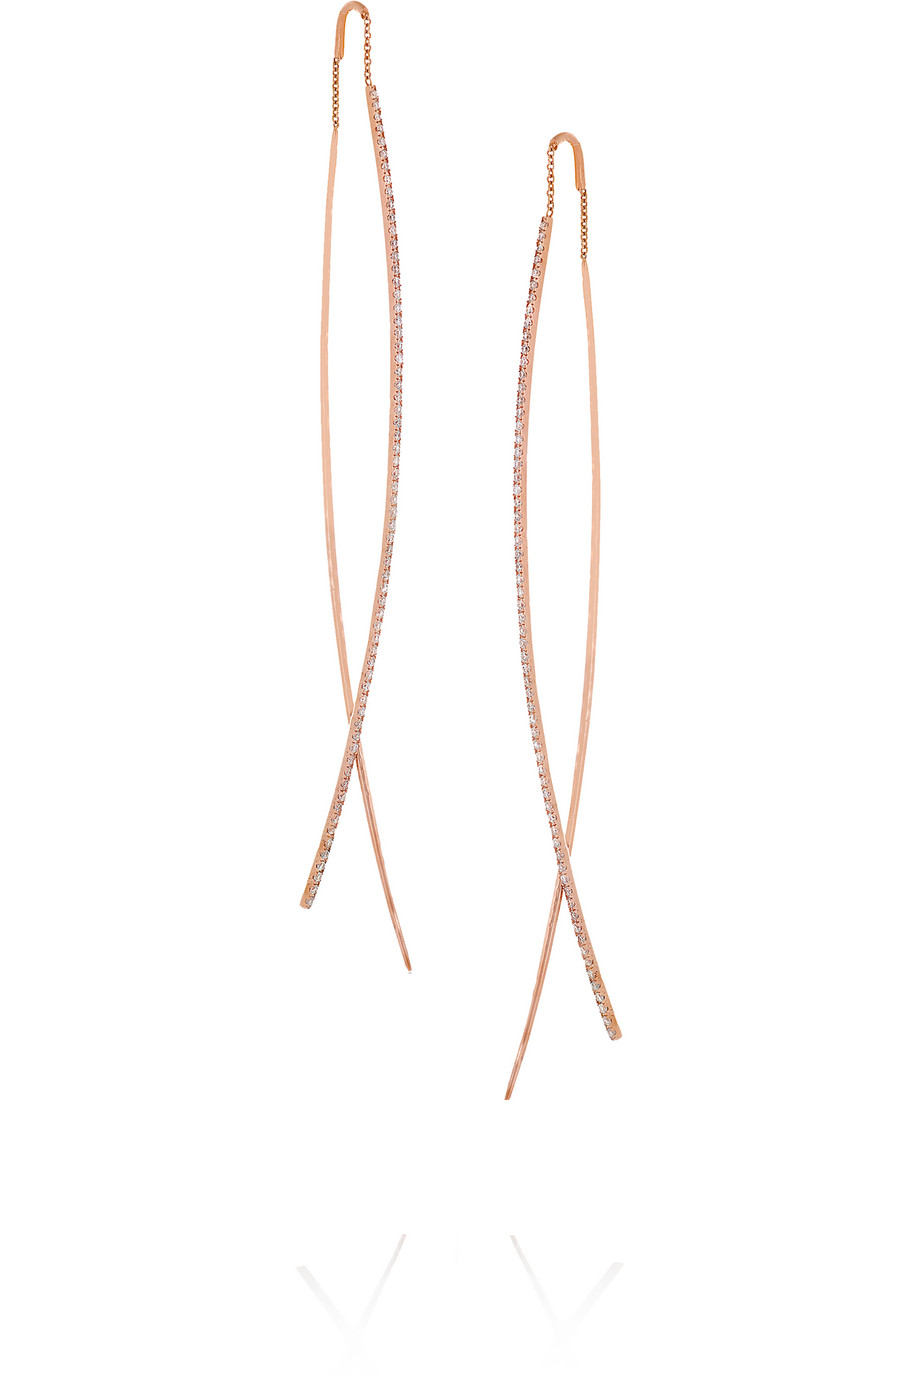 Diane Kordas Double Bar 18-Karat Rose Gold Diamond Earrings, Women's